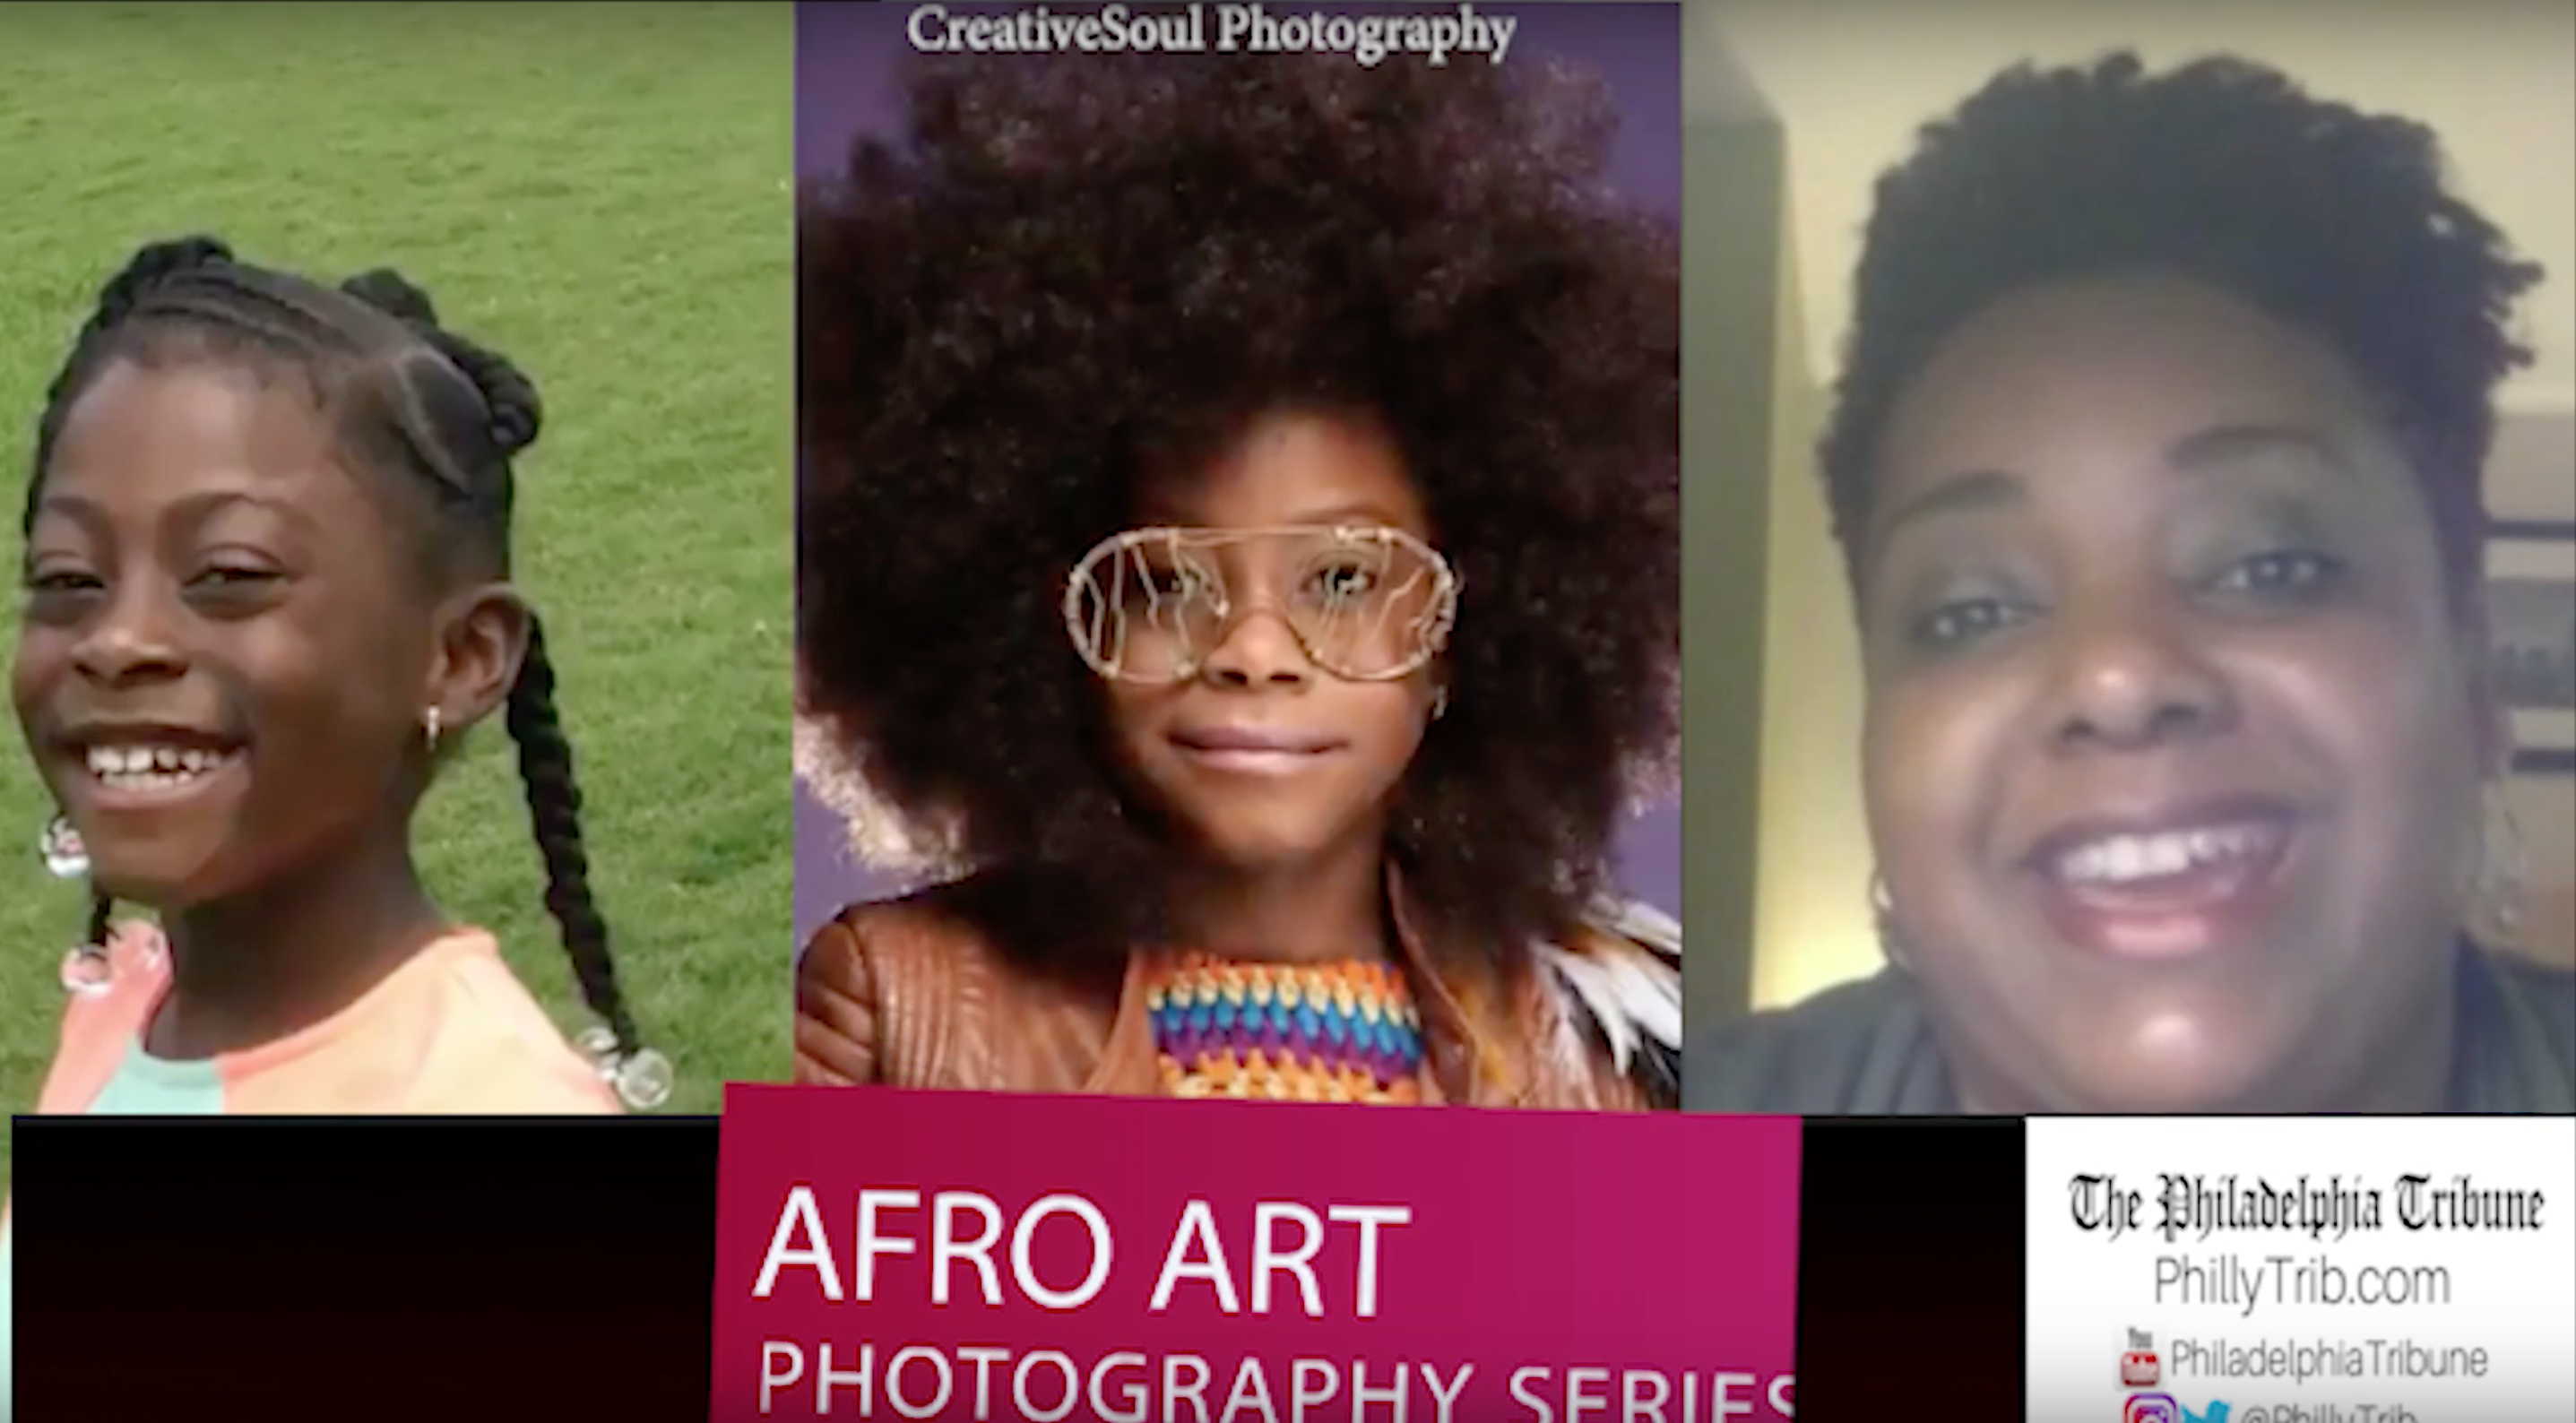 11/26/17: 'AfroArt' series highlights natural hair pride